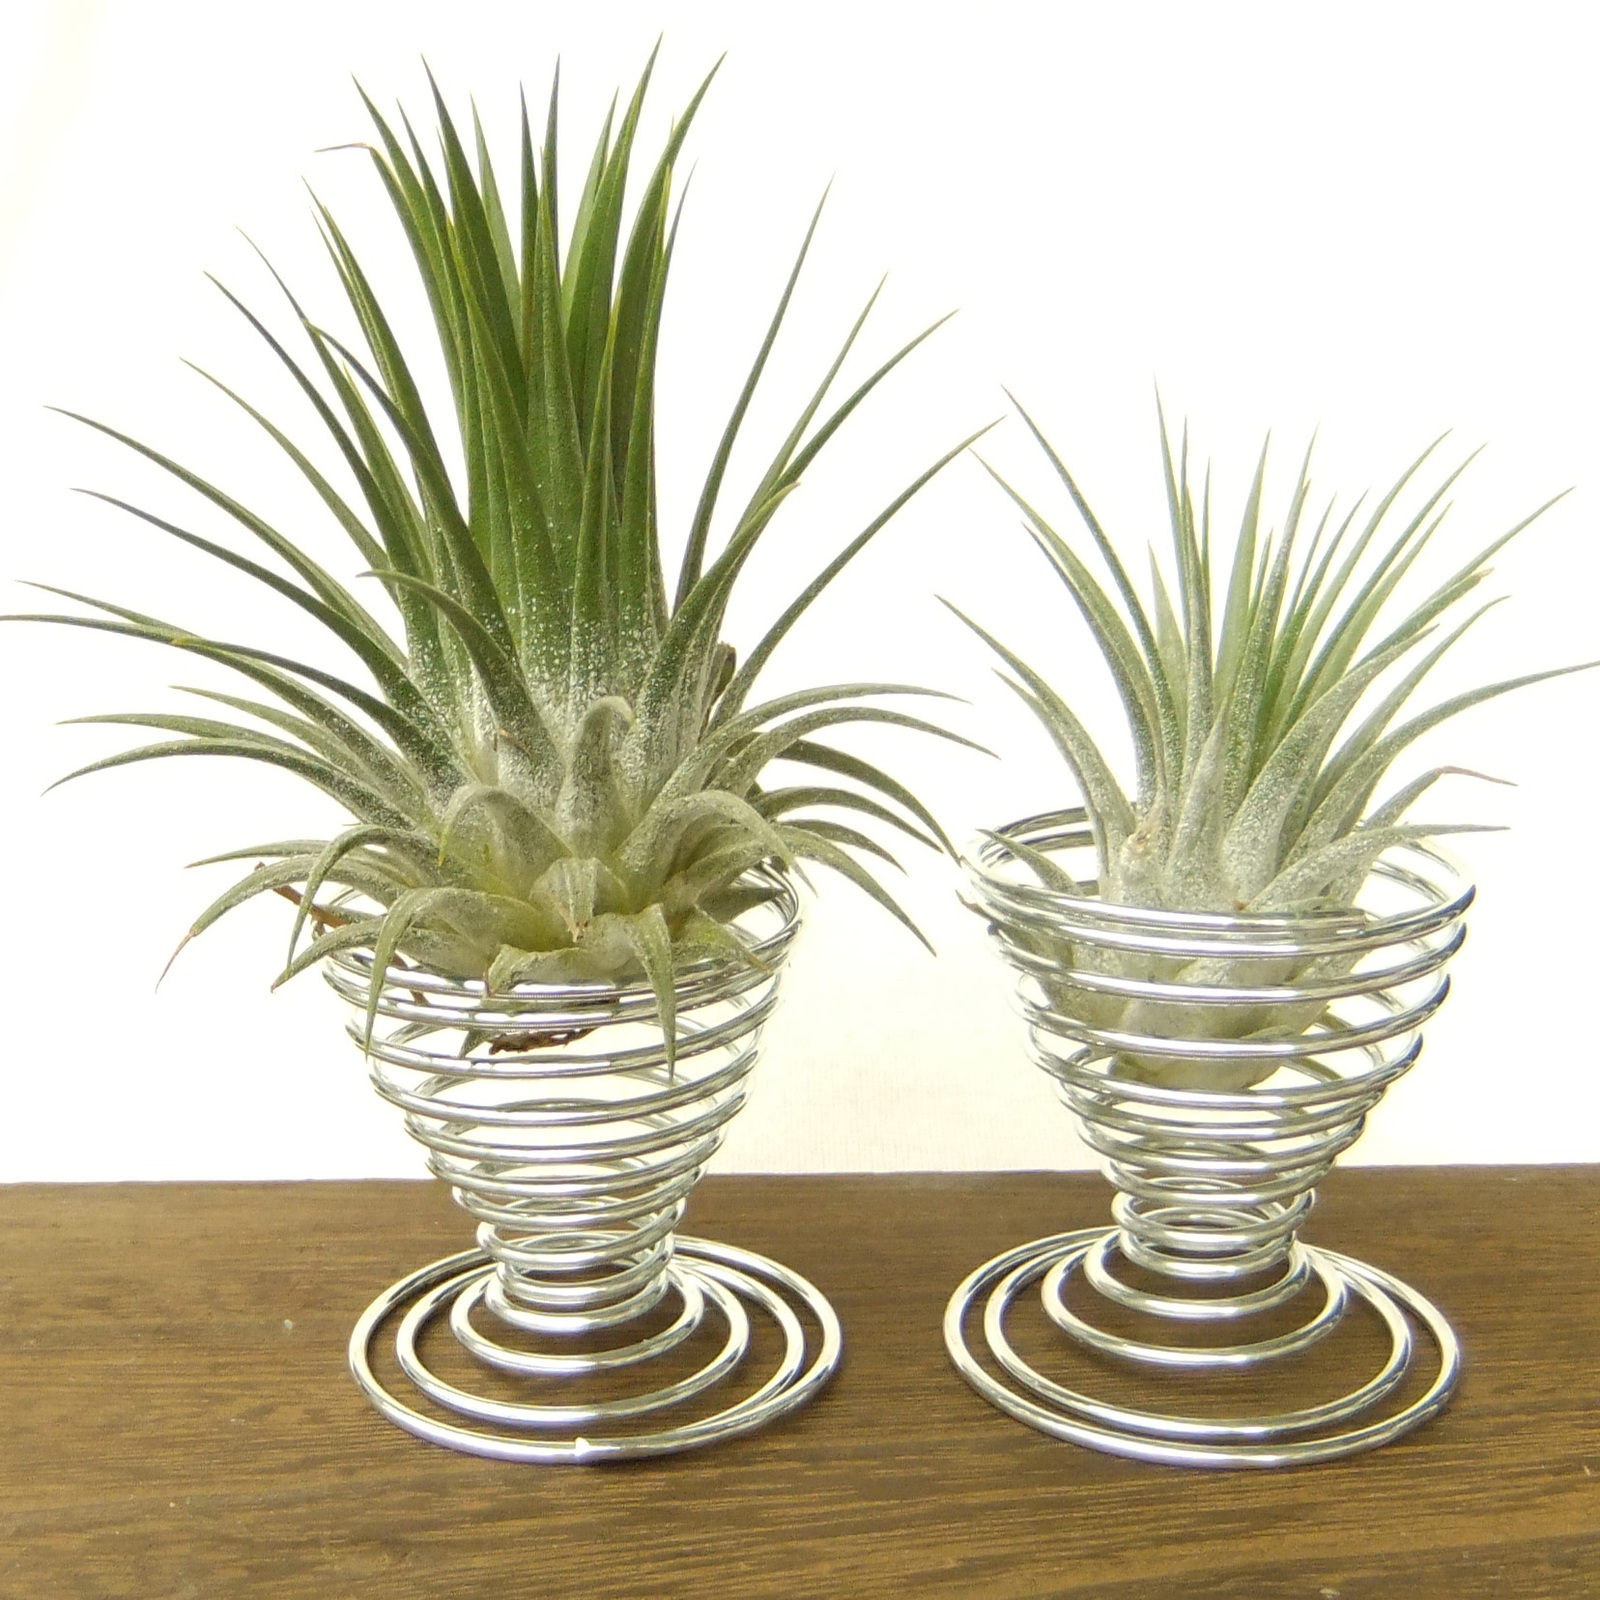 2 Metal Air Plant Tillandsia Holder Container Flower Planter Office Desk Decor